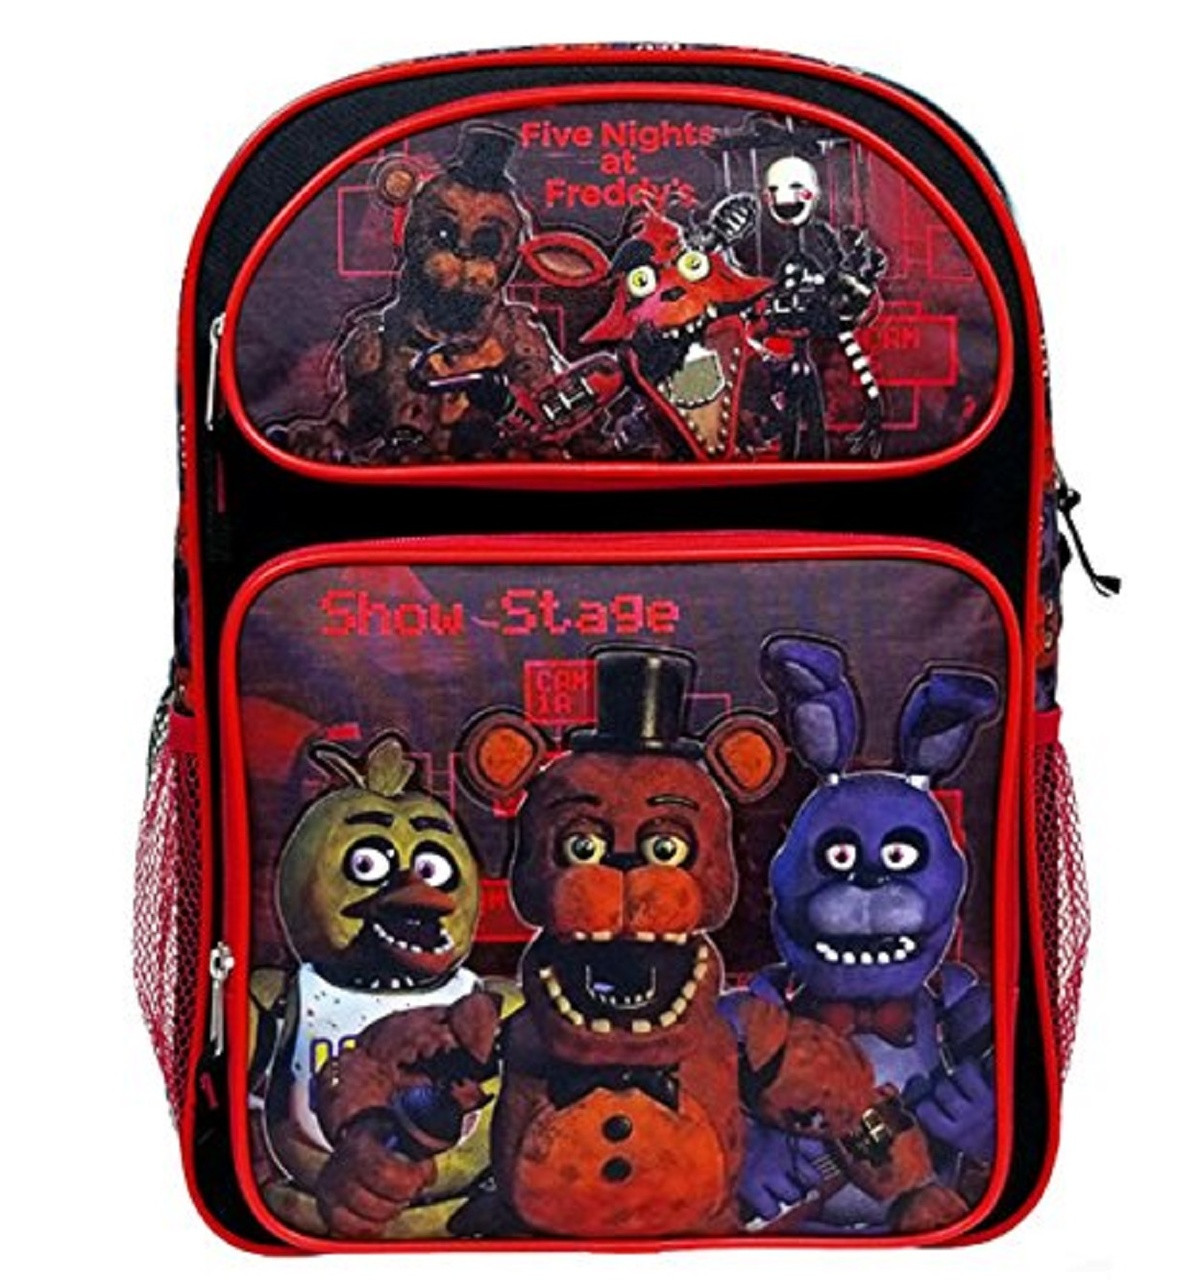 Backpack - Five Nights at Freddy's - Large 16 Inch - Show Stage